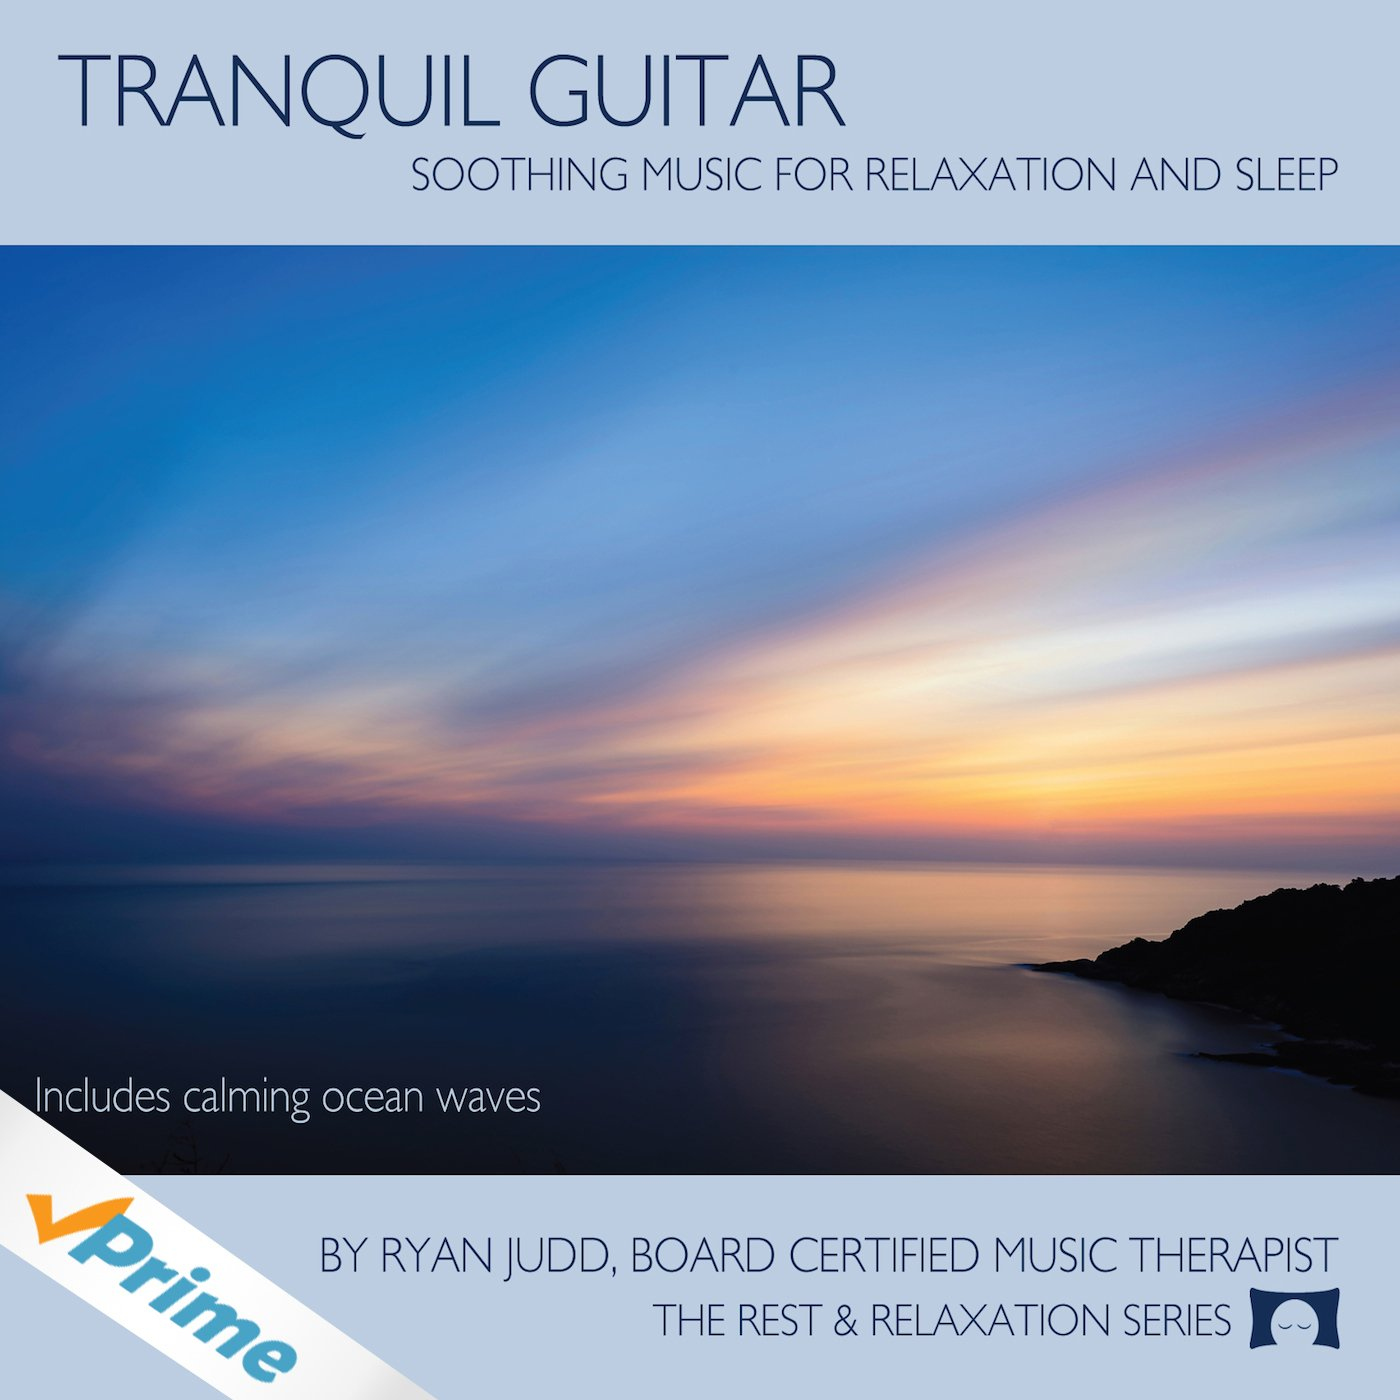 Tranquil Guitar CD - Soothing Music For Relaxation, Meditation and Sleep - by The Rhythm Tree - The Rest and Relaxation Series